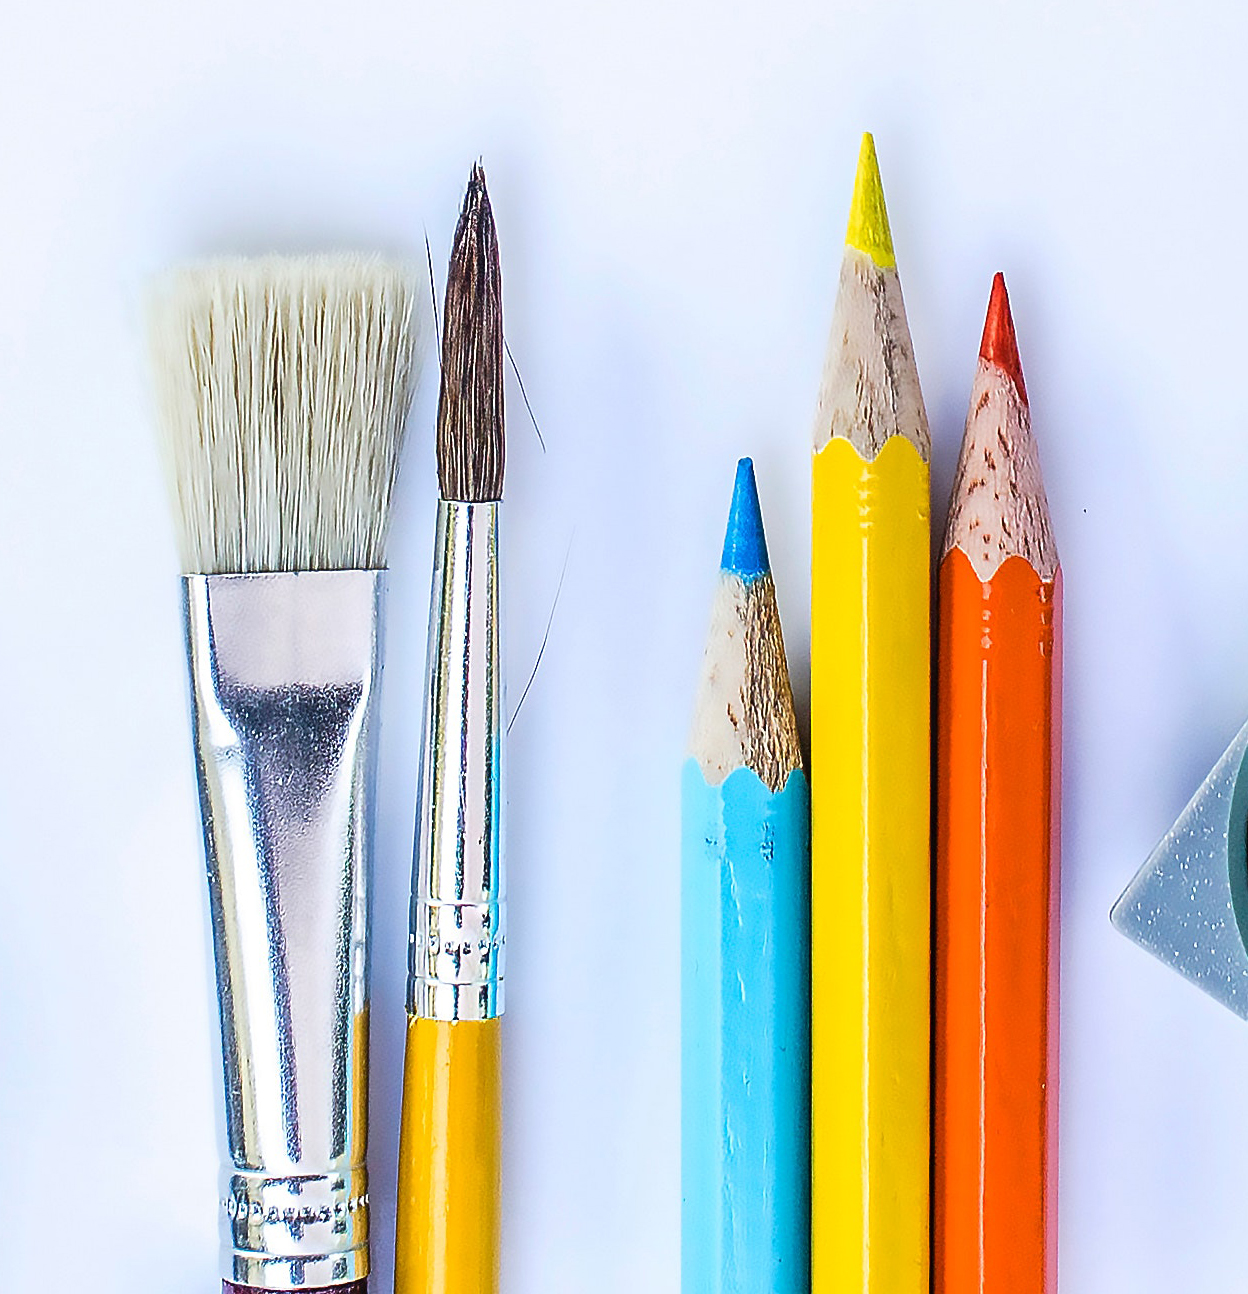 A photograph of two clean paintbrushes and blue, yellow and orange coloured pencils